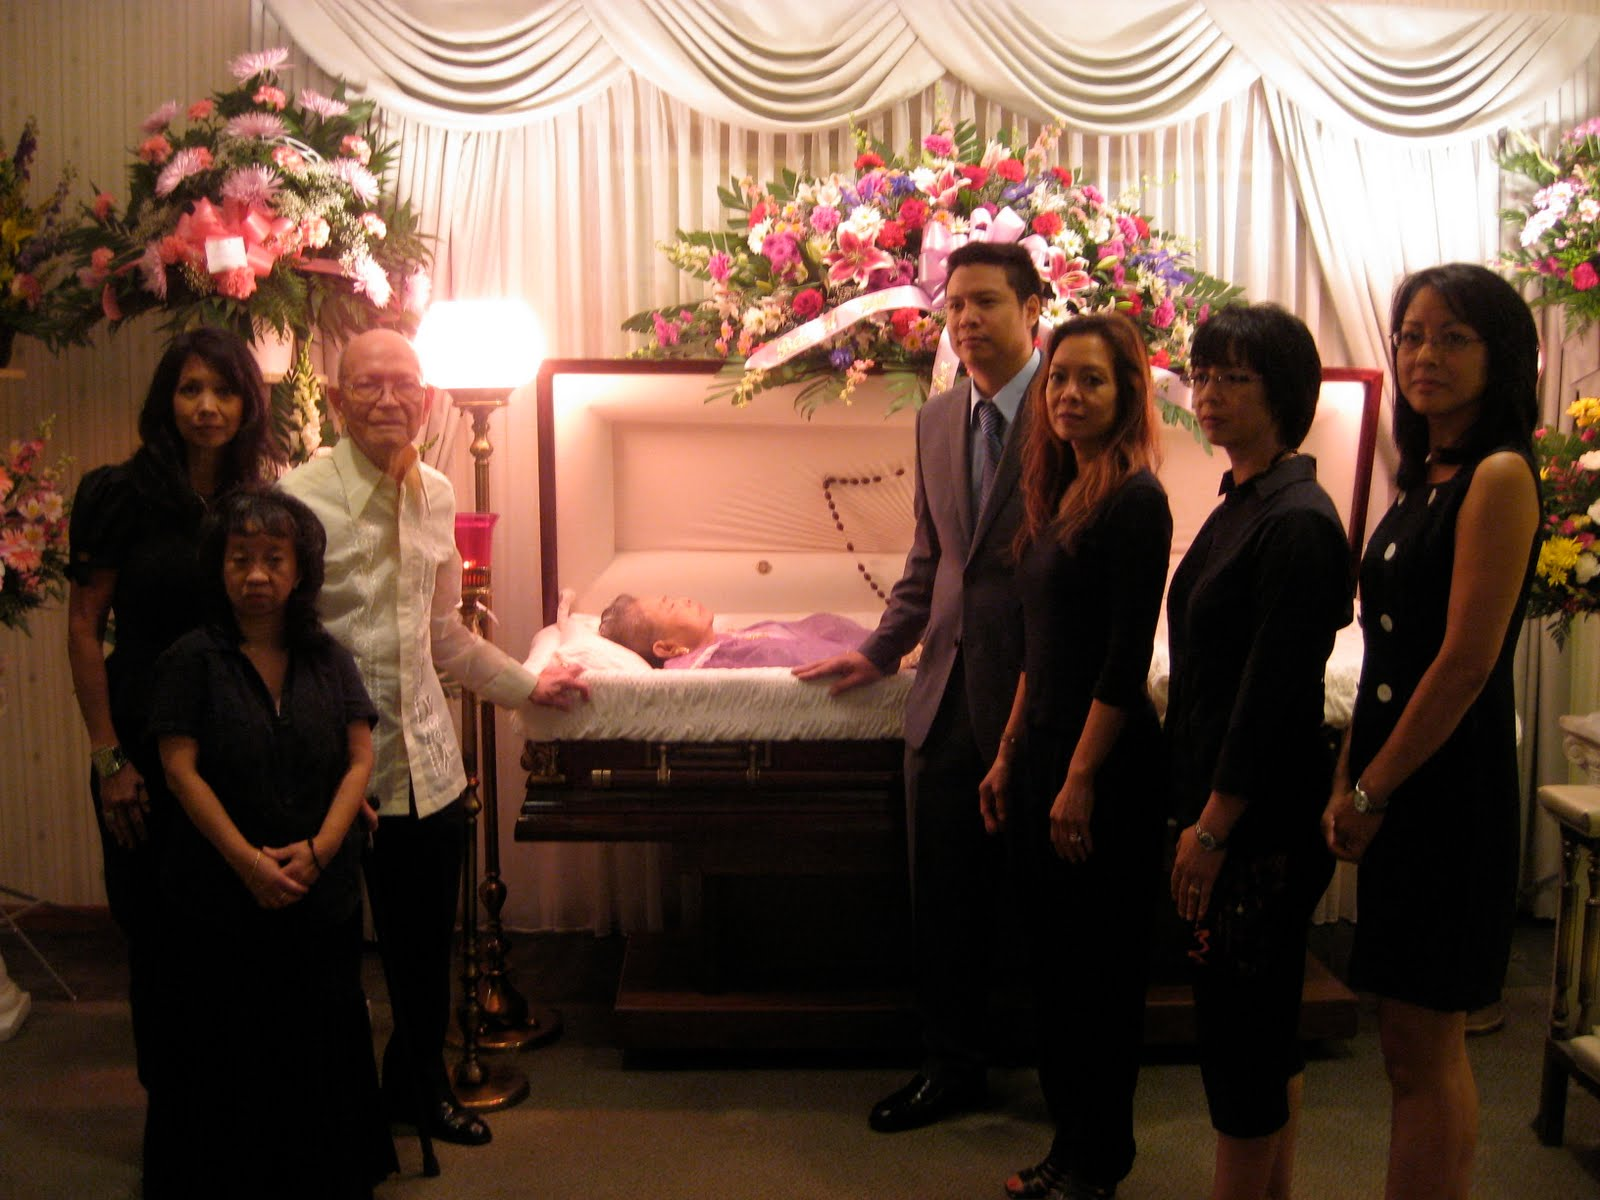 Indonesia Rituals Weddings And Funerals: Philippines–Rituals: Weddings And Funerals